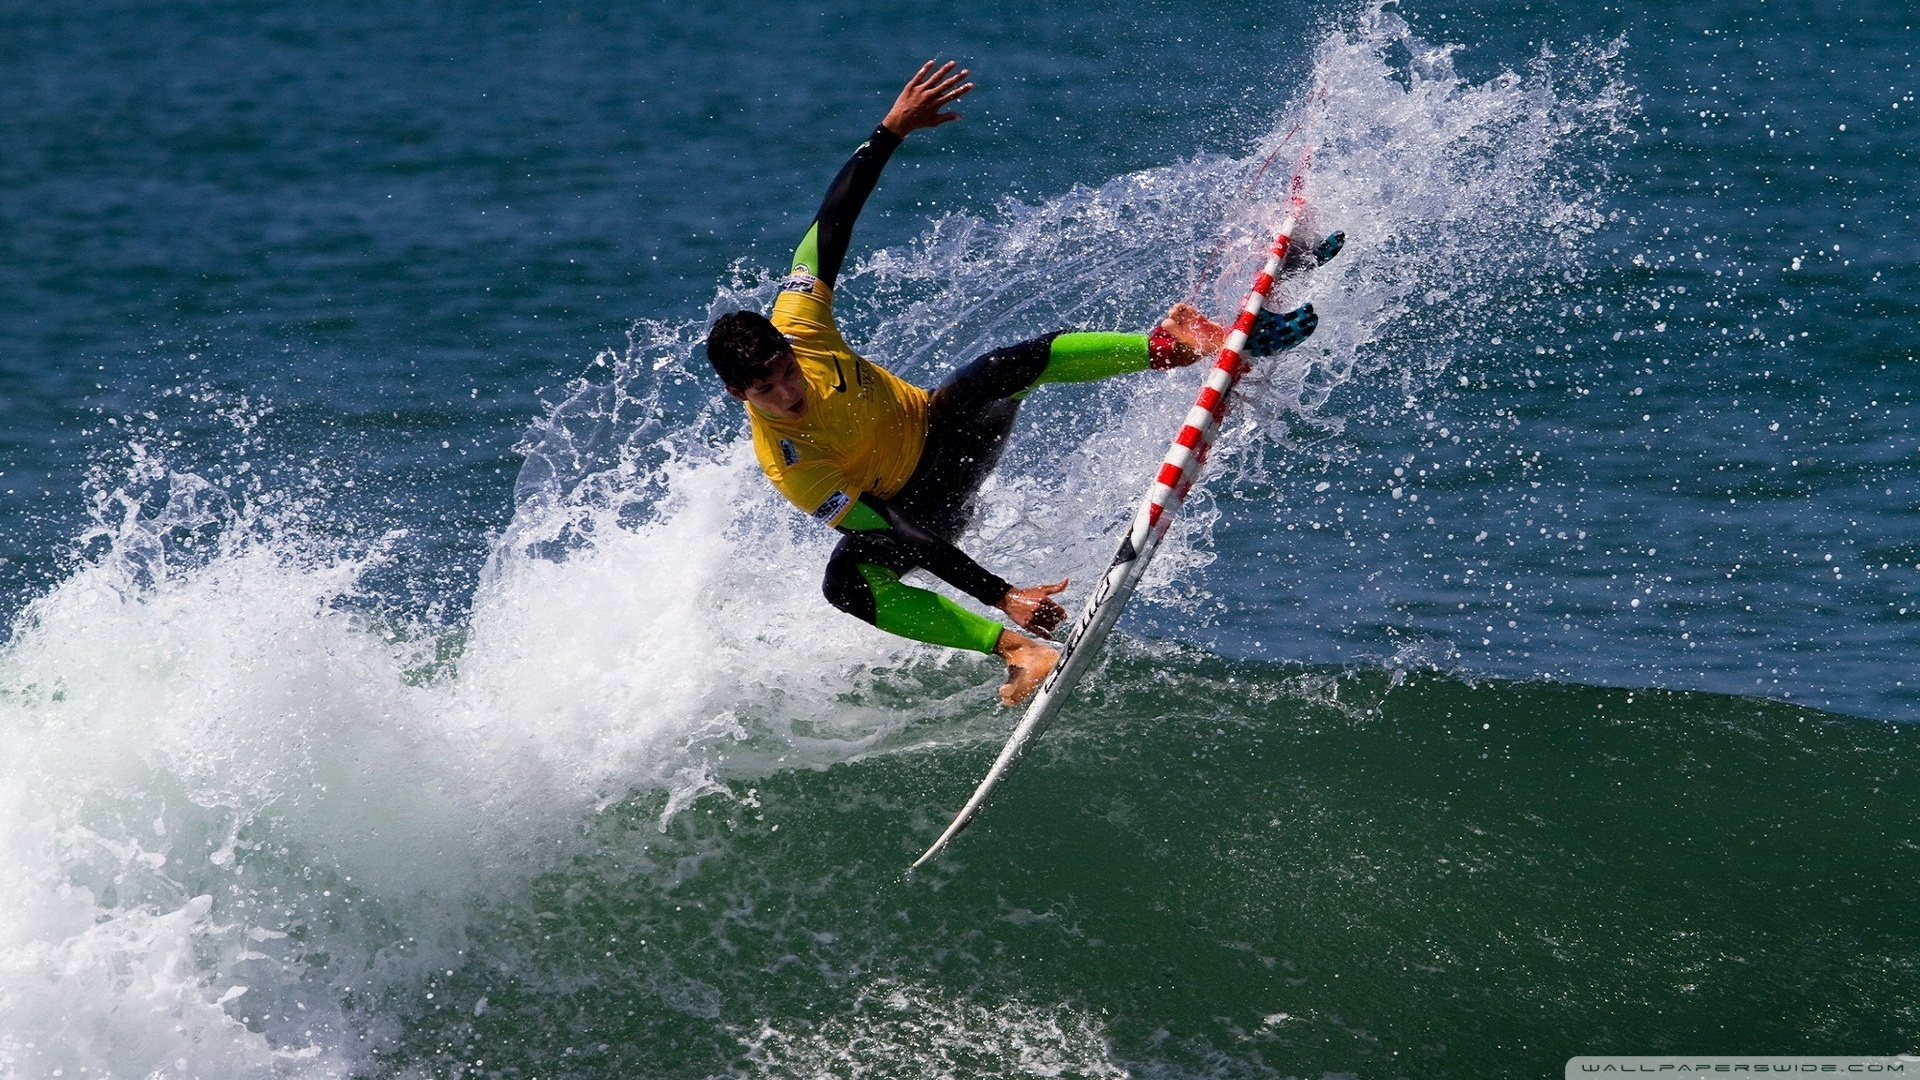 Surf For Life 1920x1080 HD Wallpaper Sport Surfing Water Sports 1920x1080